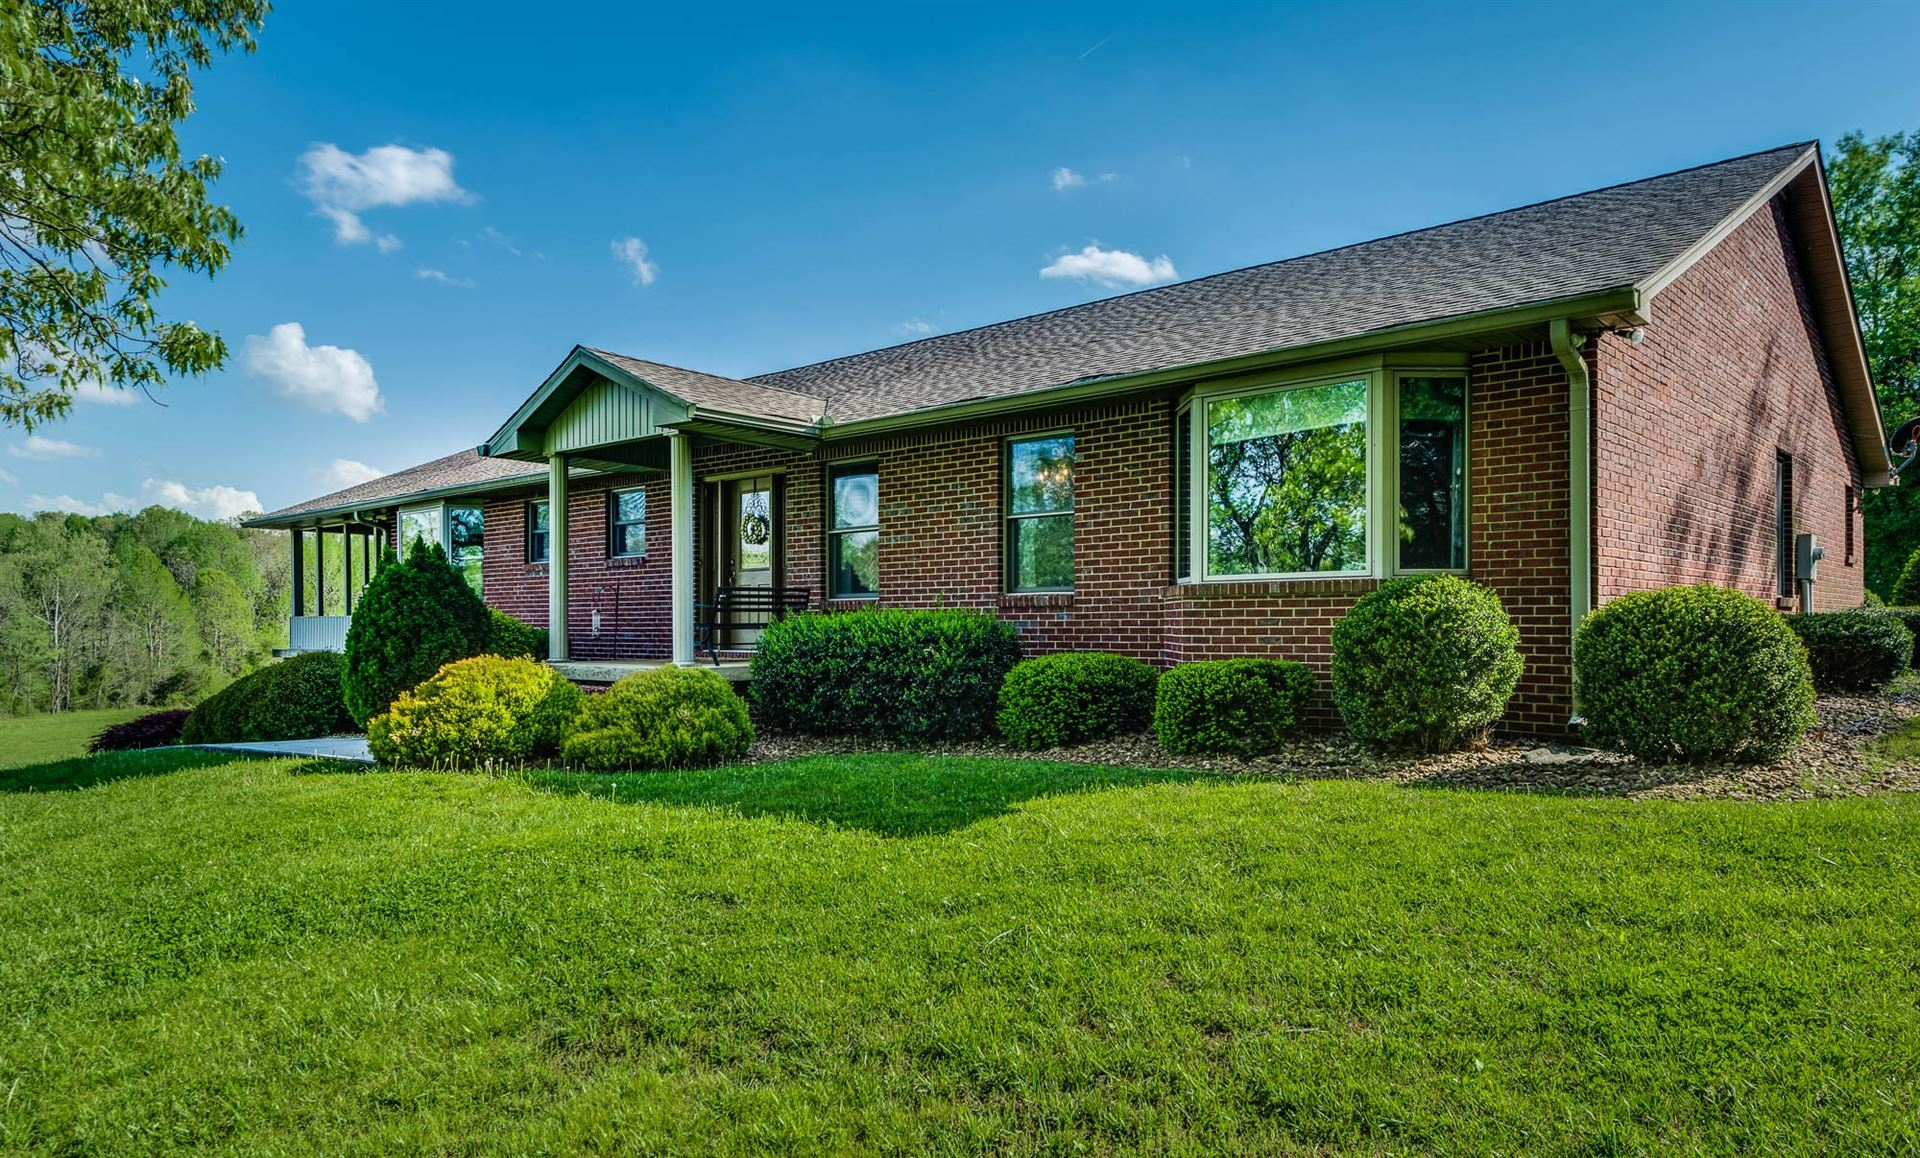 2088 Buffalo Valley Rd, Cookeville, TN 38501 - MLS#: 2174144